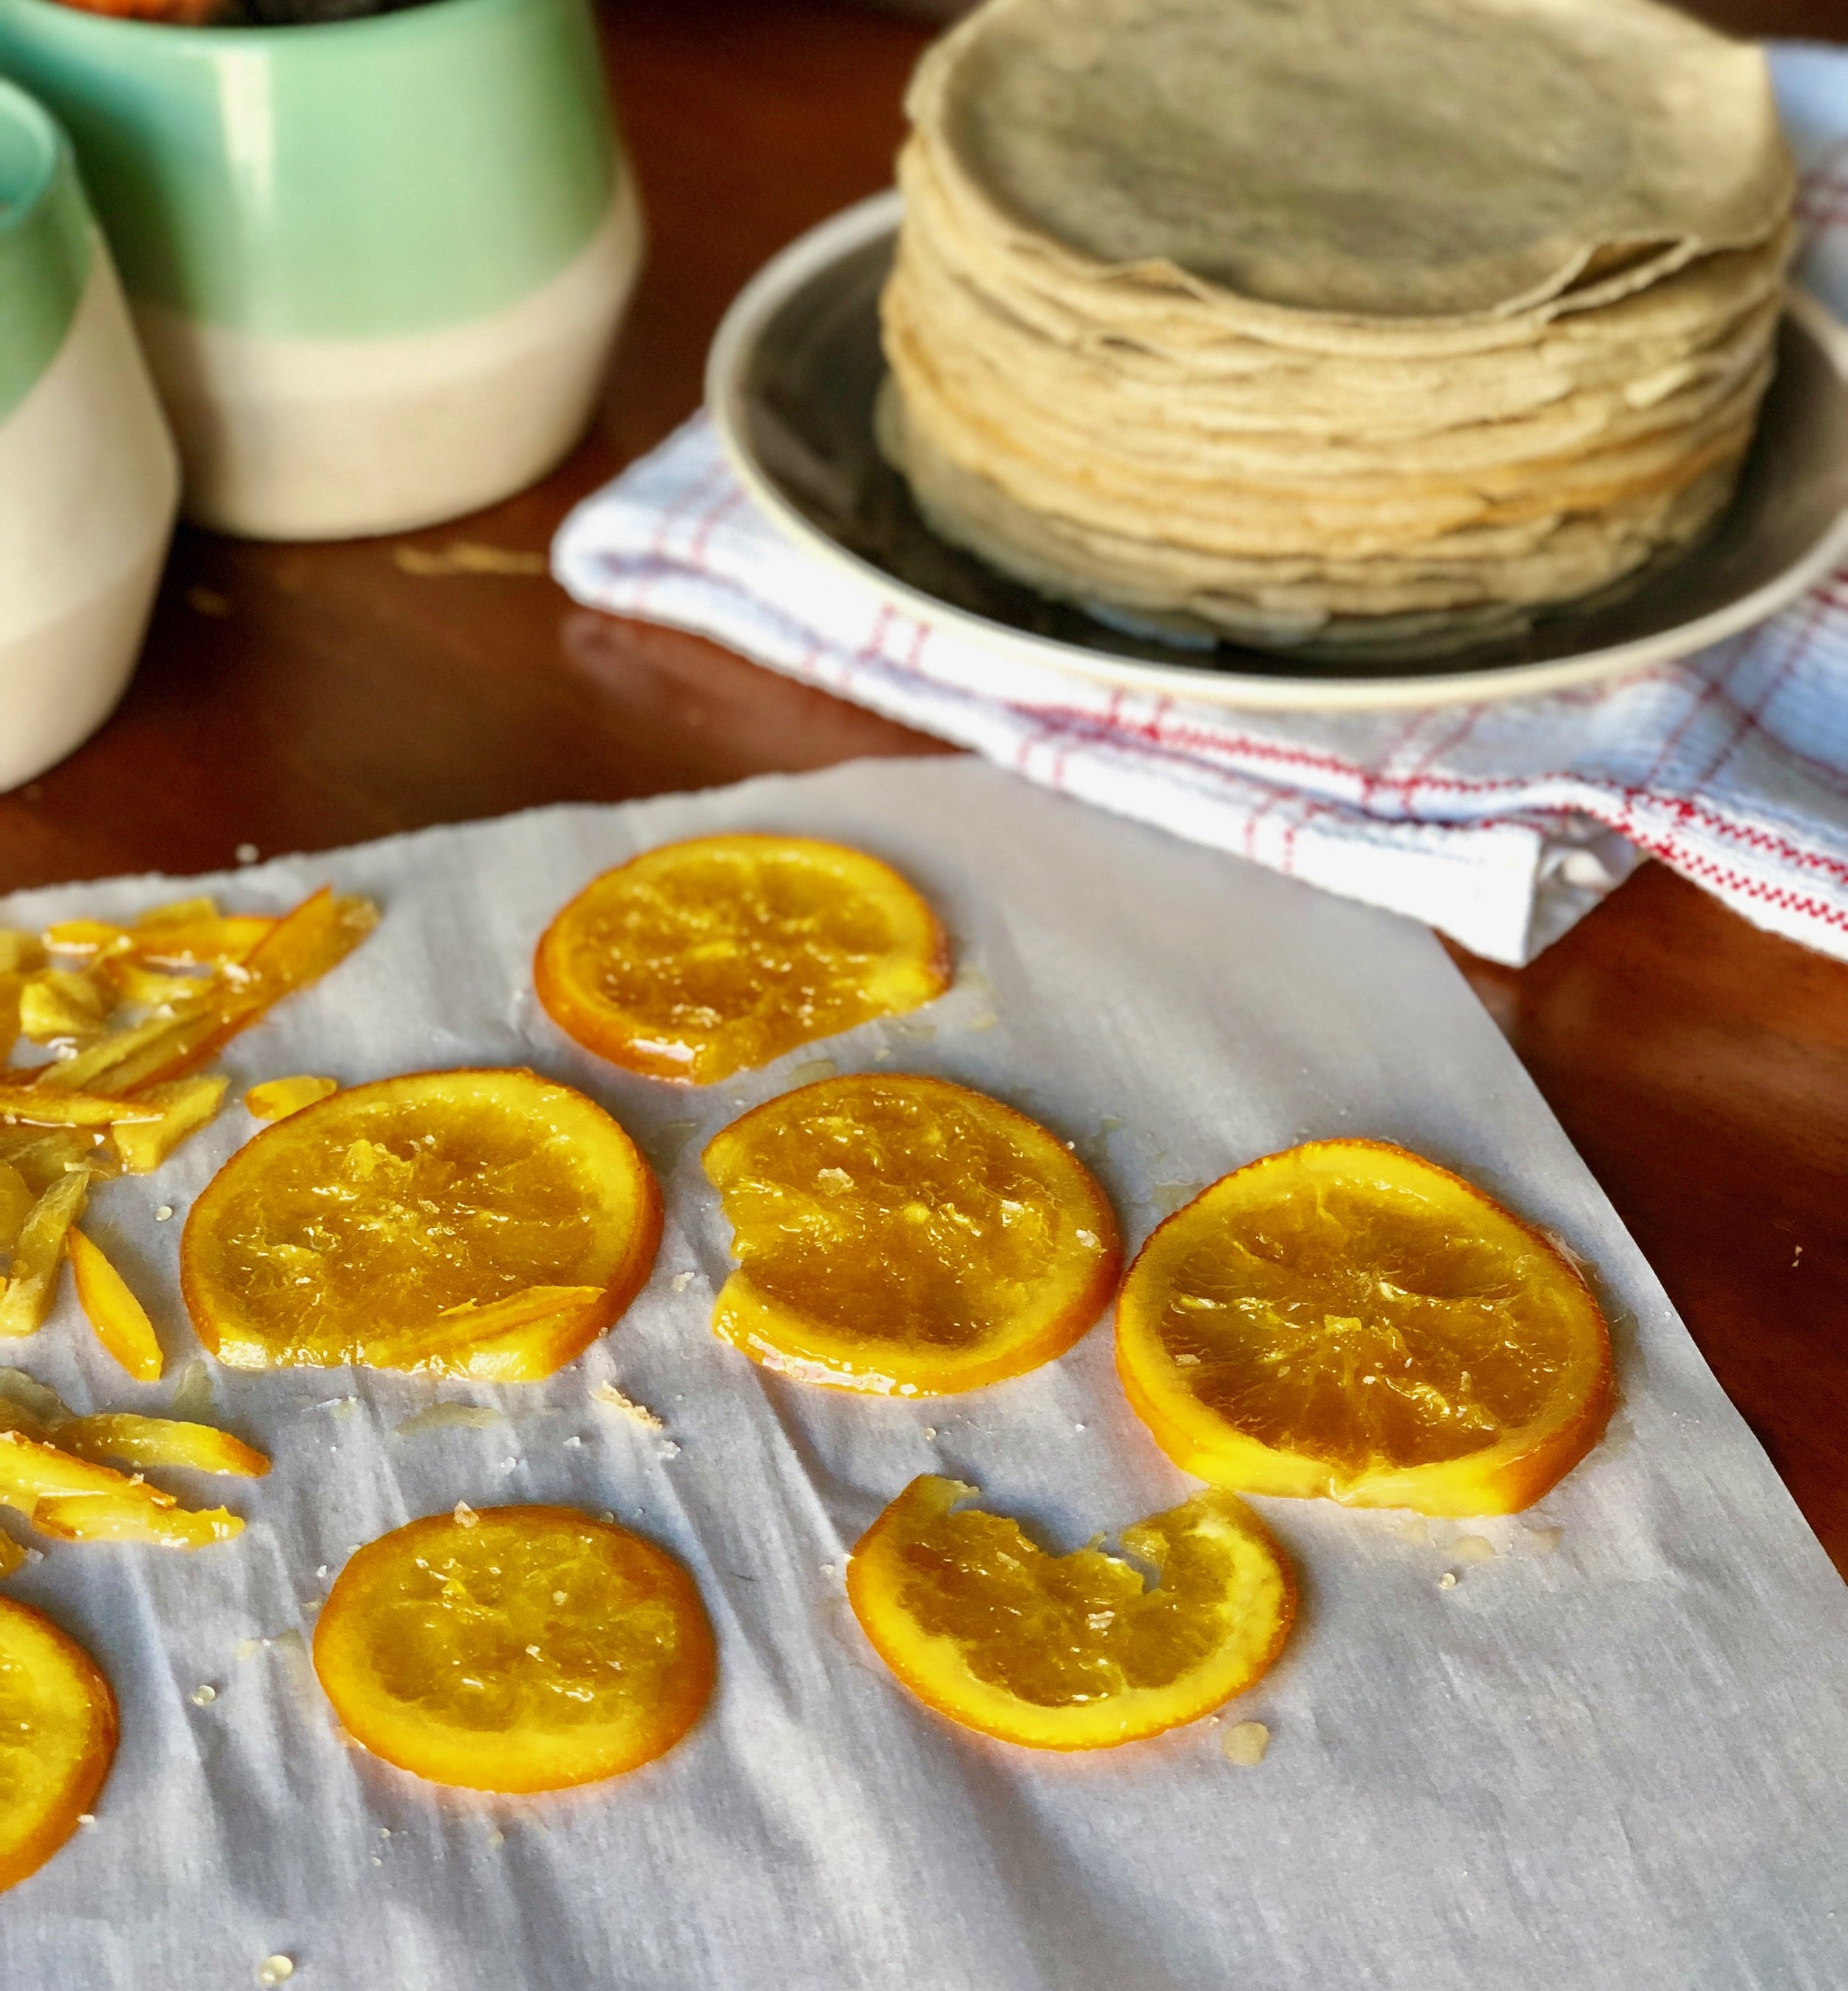 candied-oranges-galettes.jpg